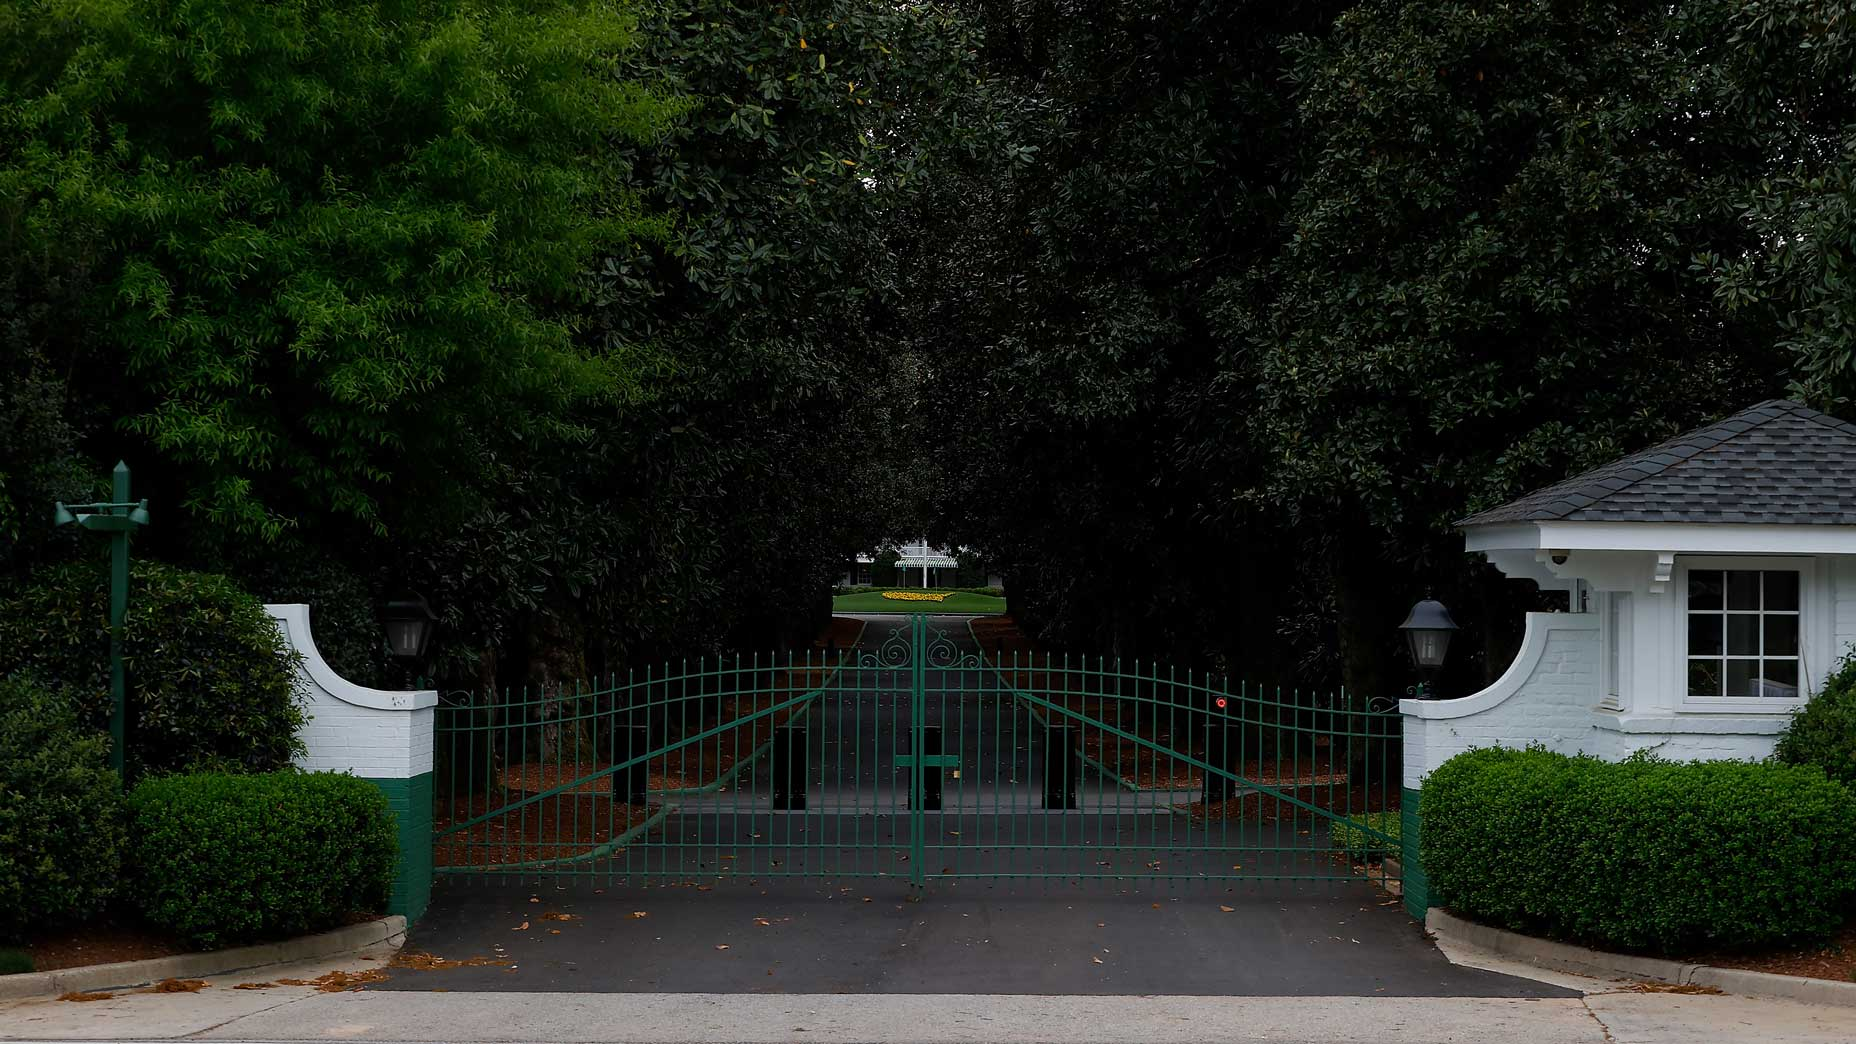 The gates at Augusta National Golf Club.